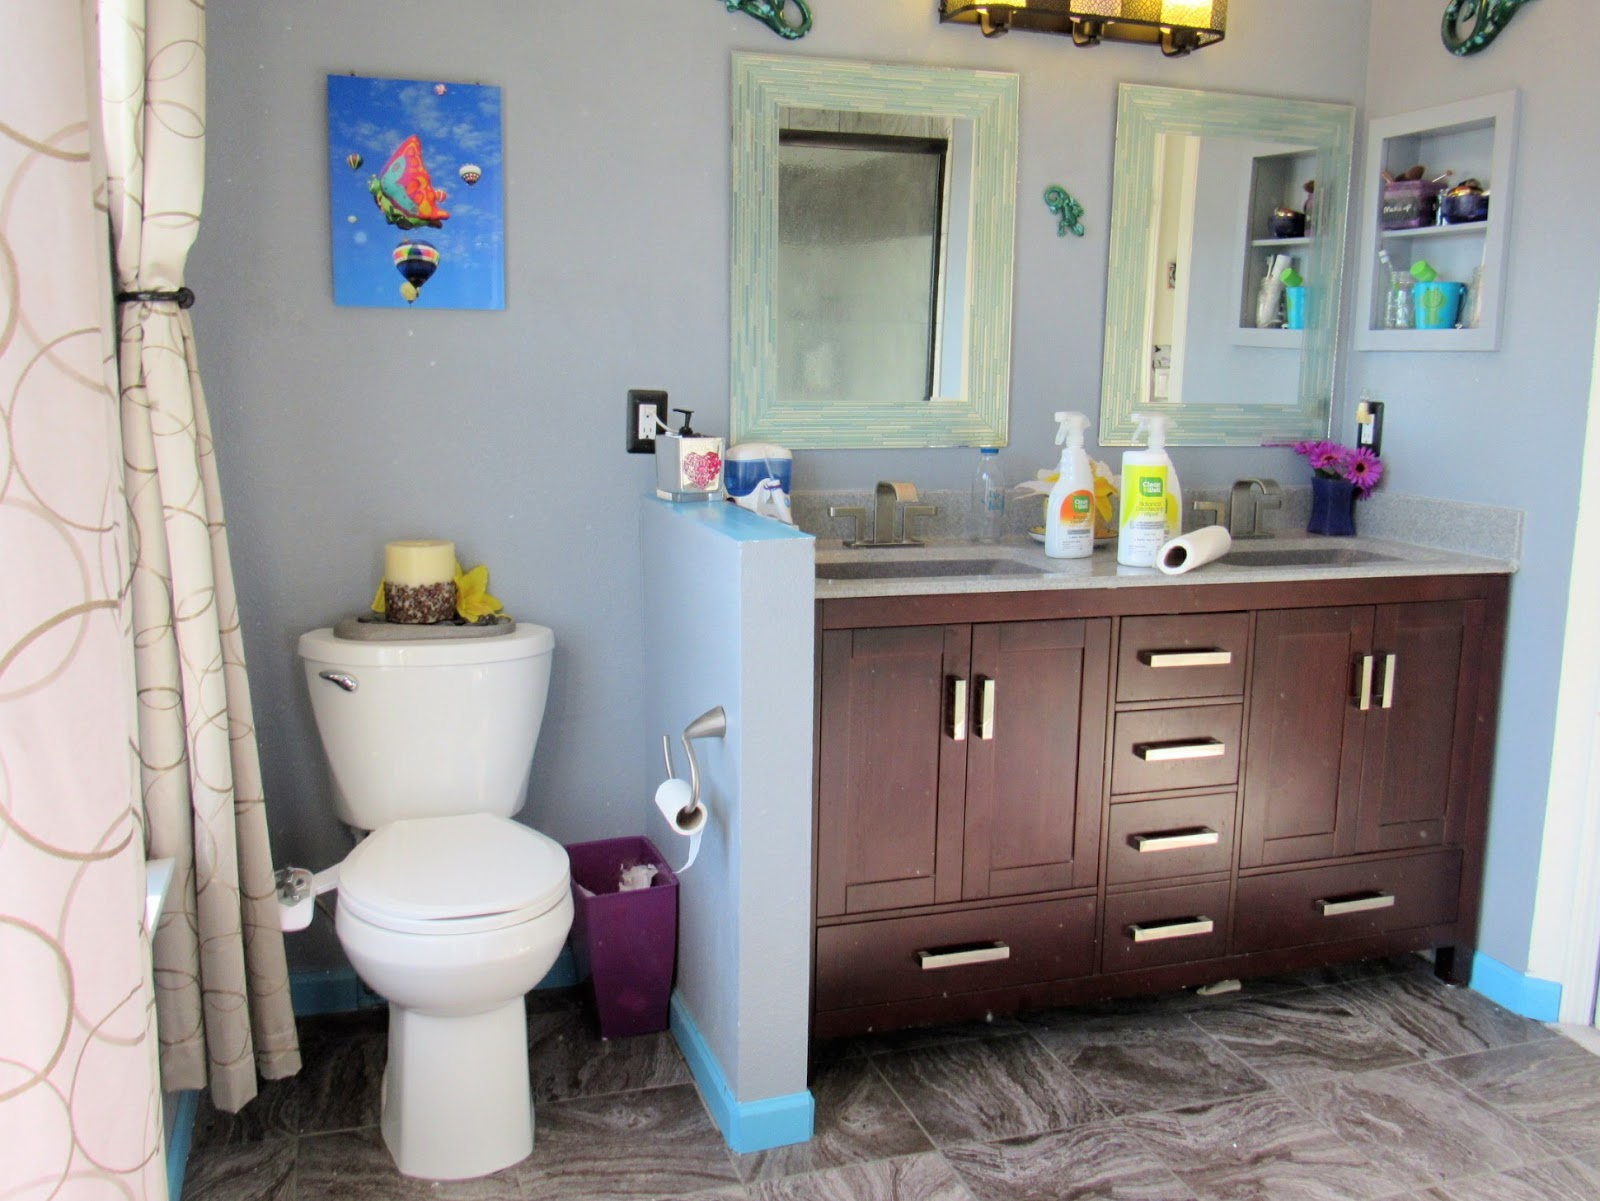 Best Way To Clean Bathroom Mom Knows Best Clean The Bathroom Mess The Non Toxic Way